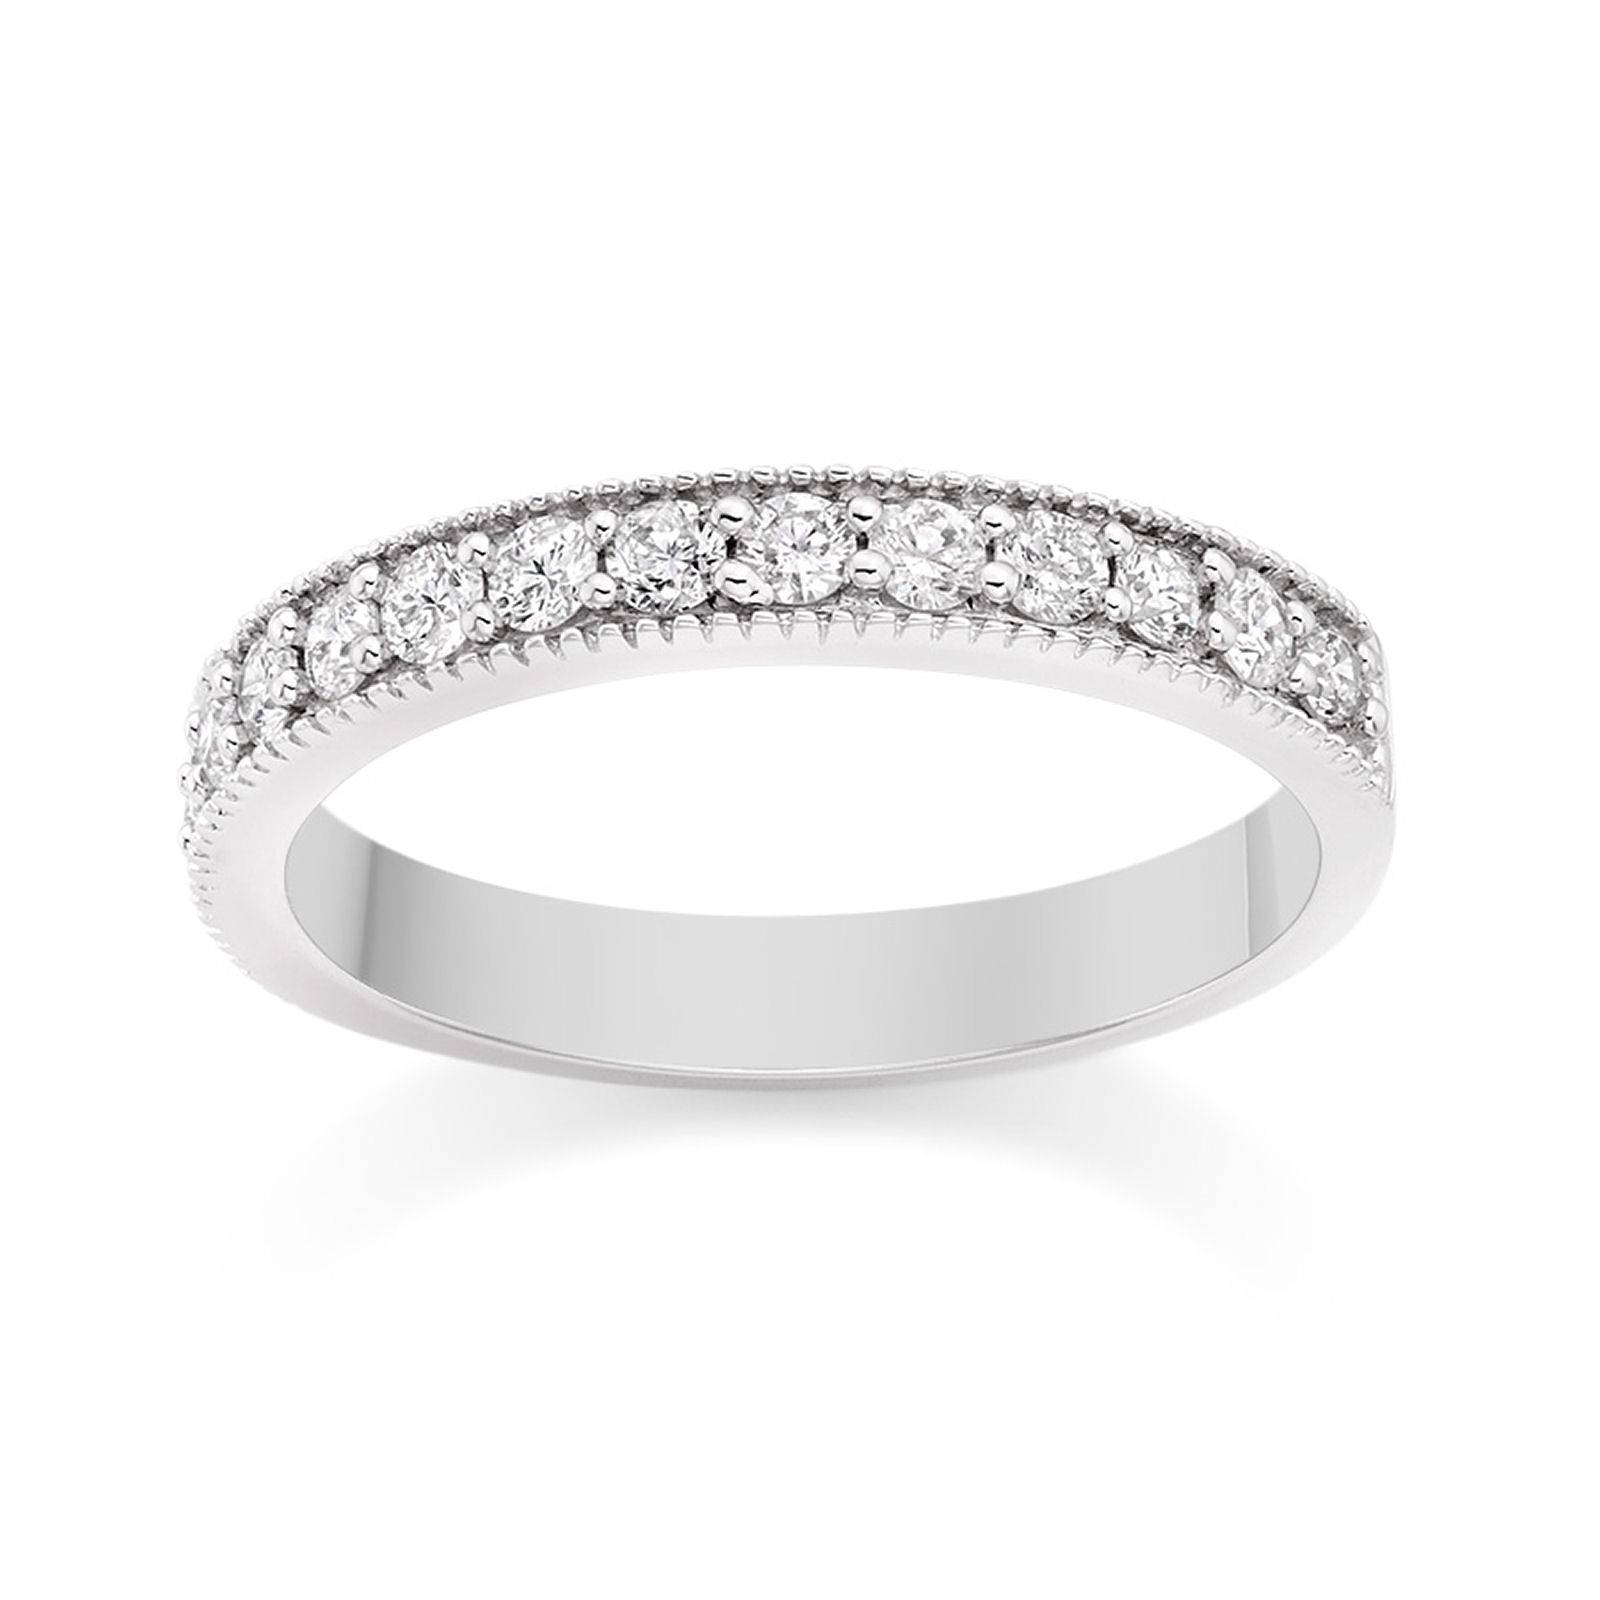 Milgrain Diamond Wedding Ring In Platinum Wedding Dress From With Diamond And Platinum Wedding Rings (Gallery 8 of 15)